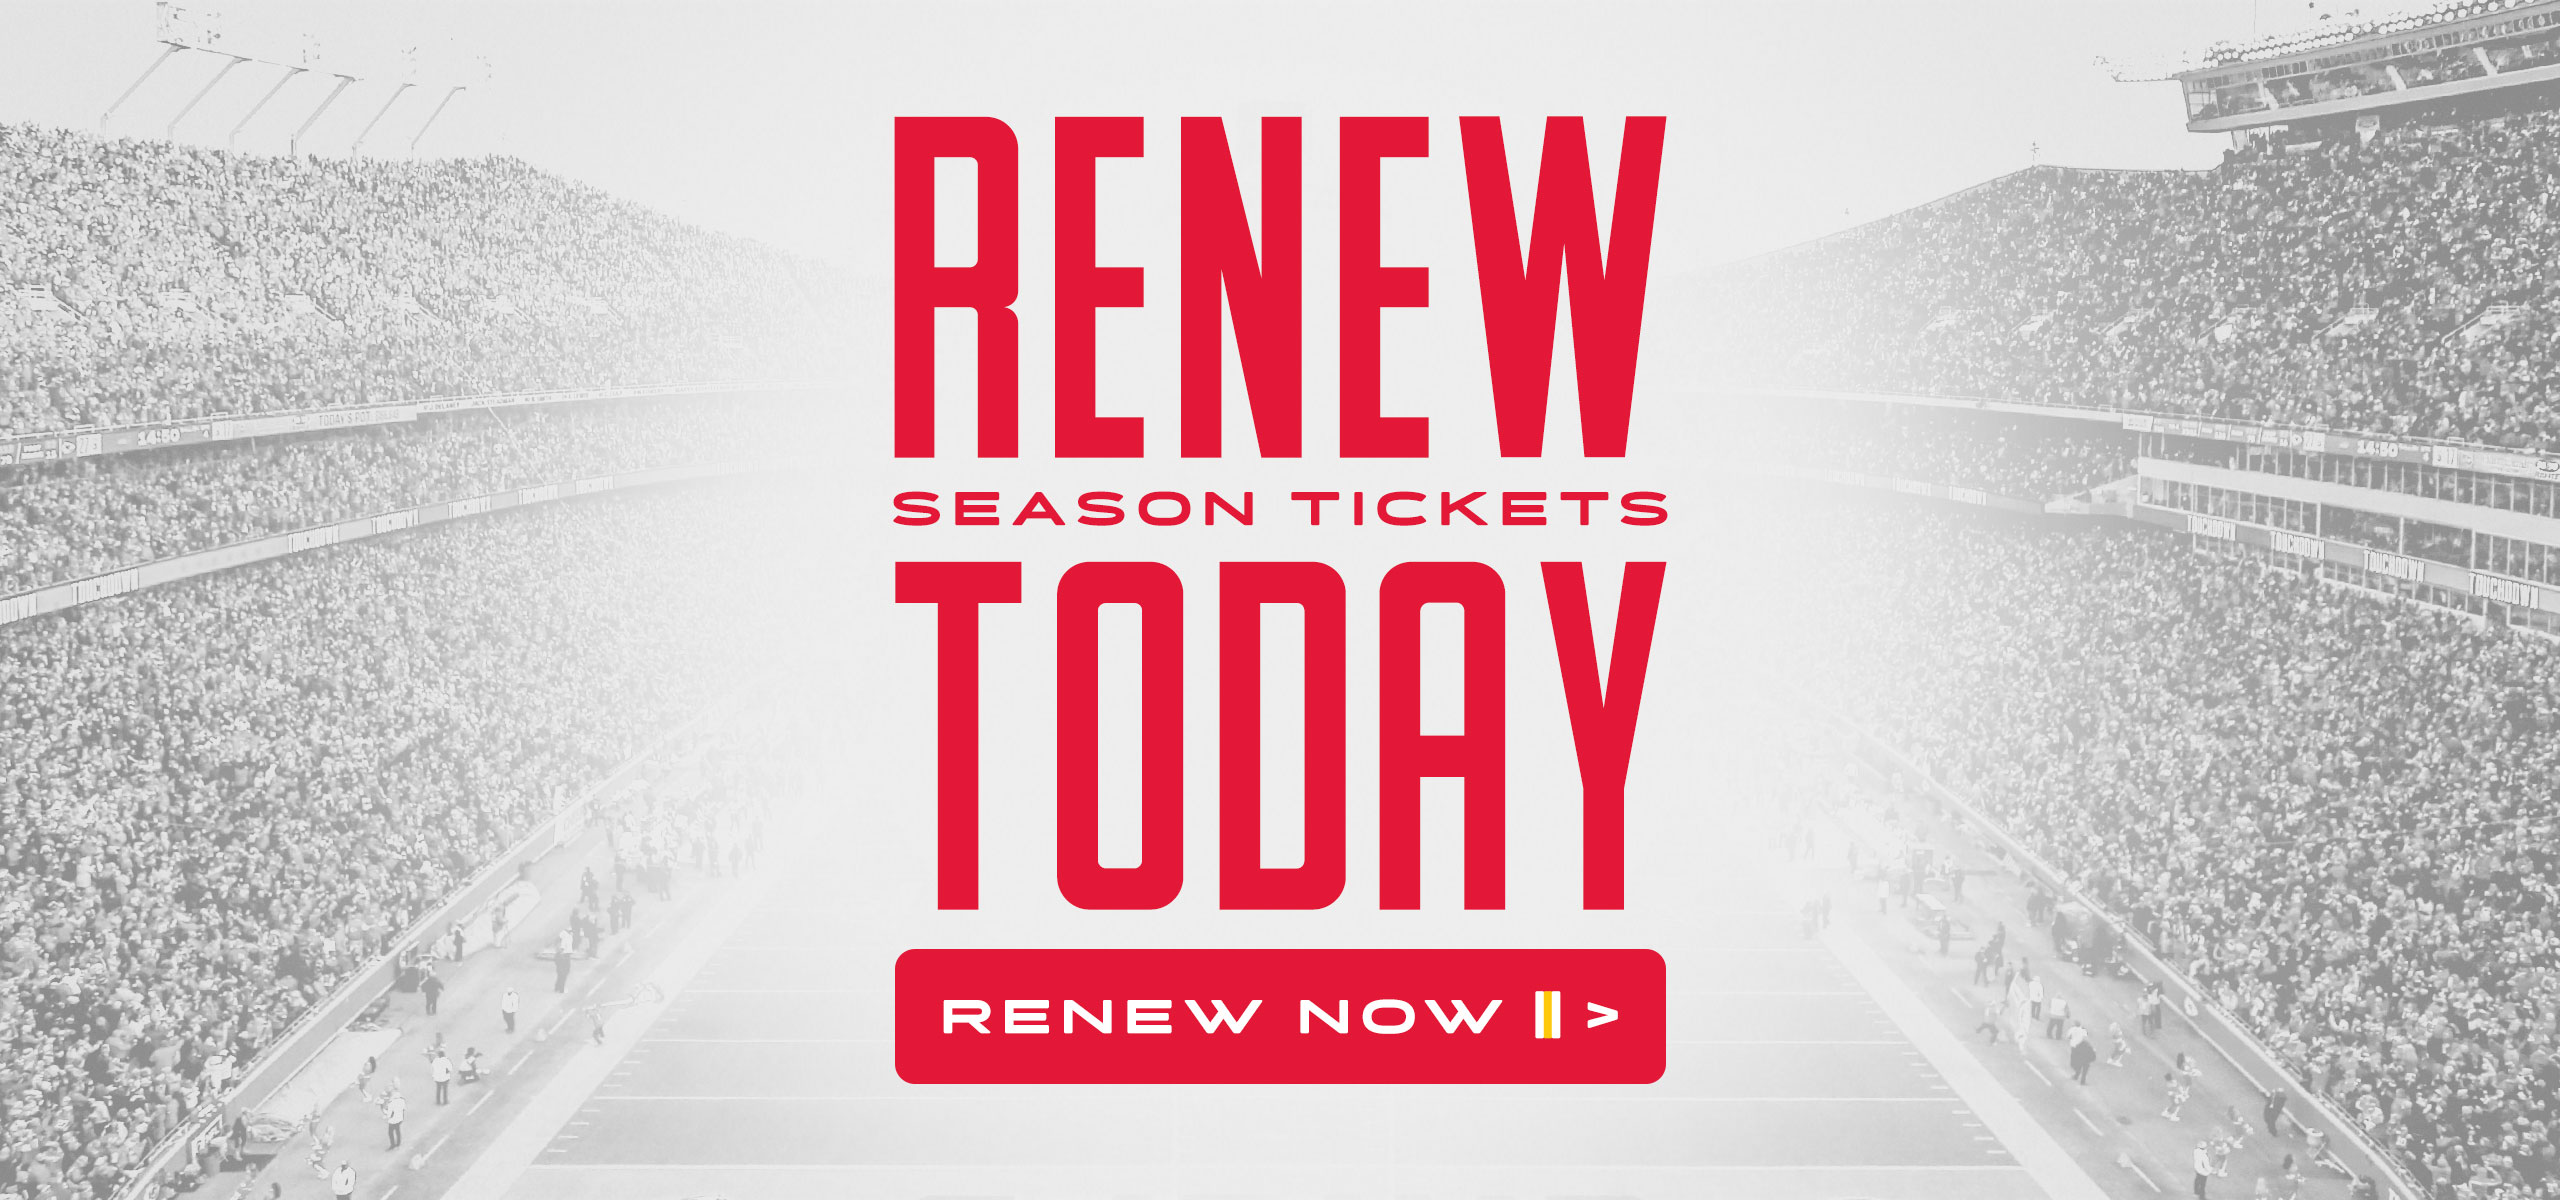 Renew your 2020 season tickets today